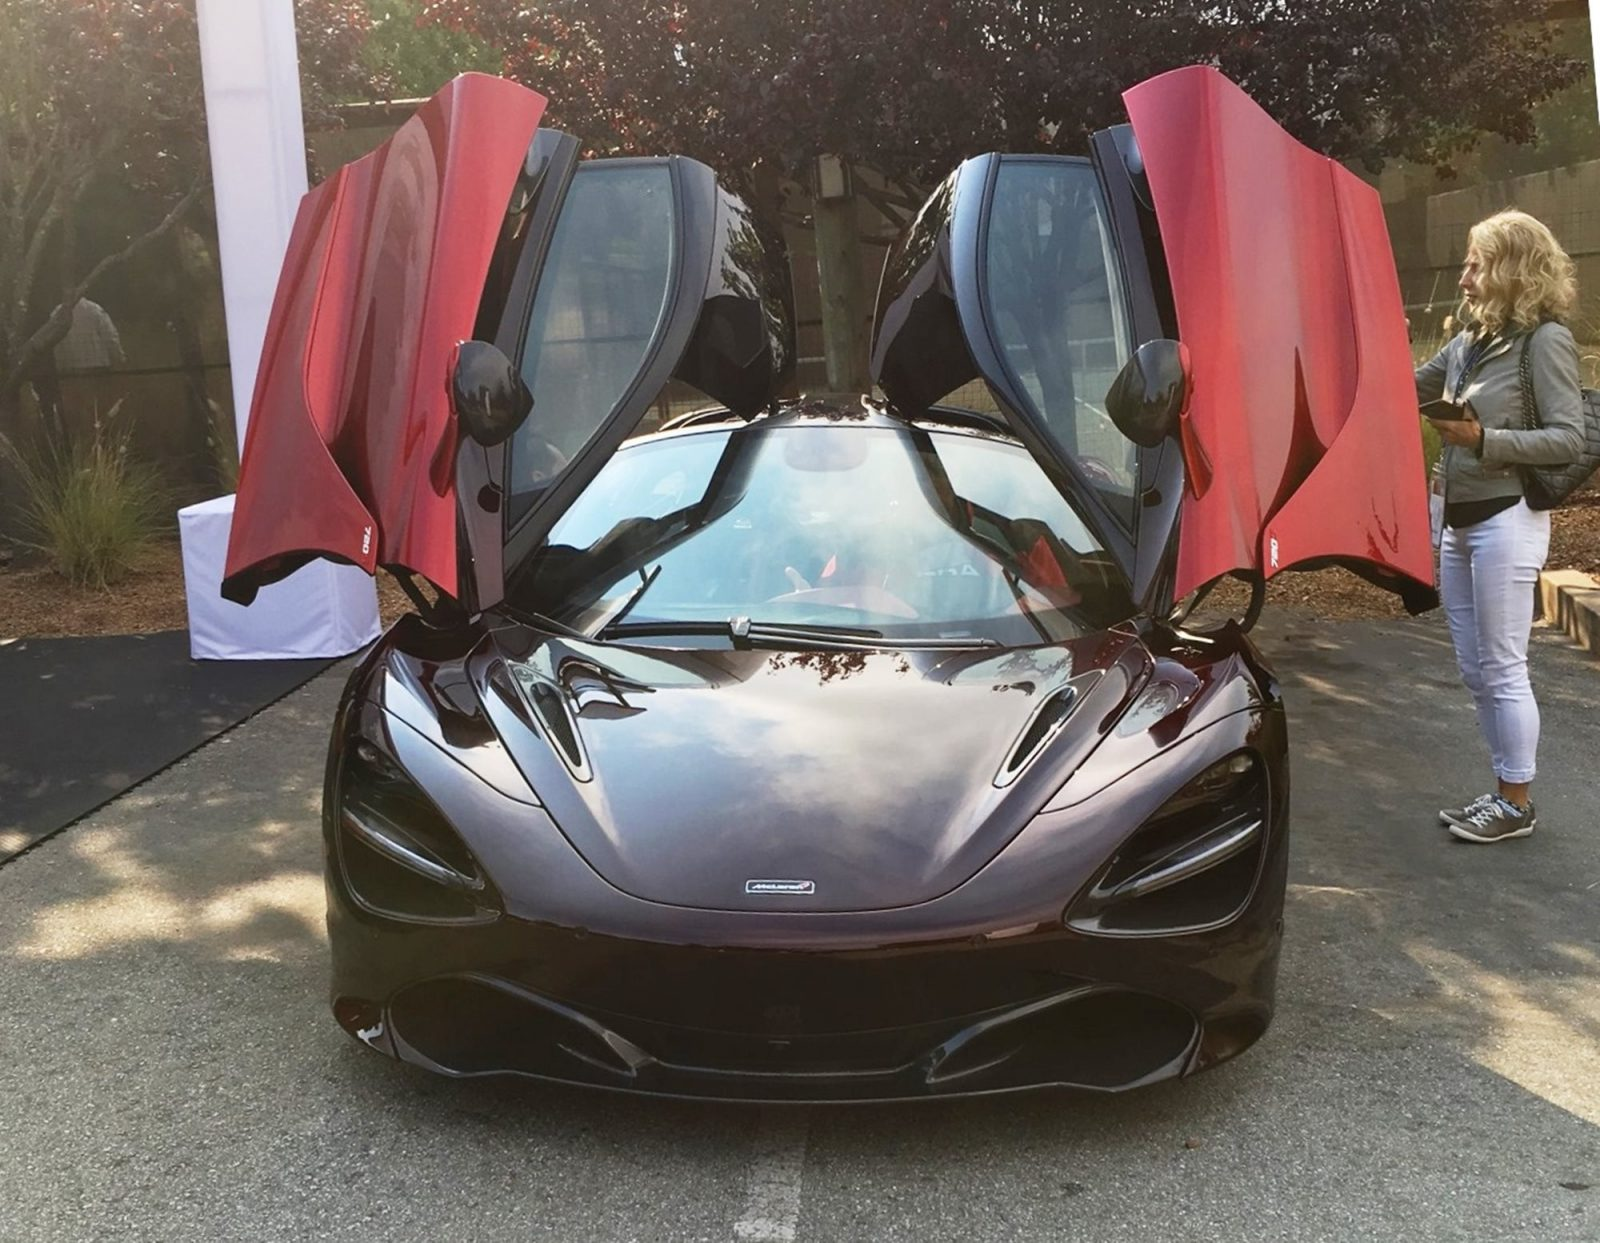 MCLAREN MADNESS - 2017 Pebble Beach VIP Villa 58